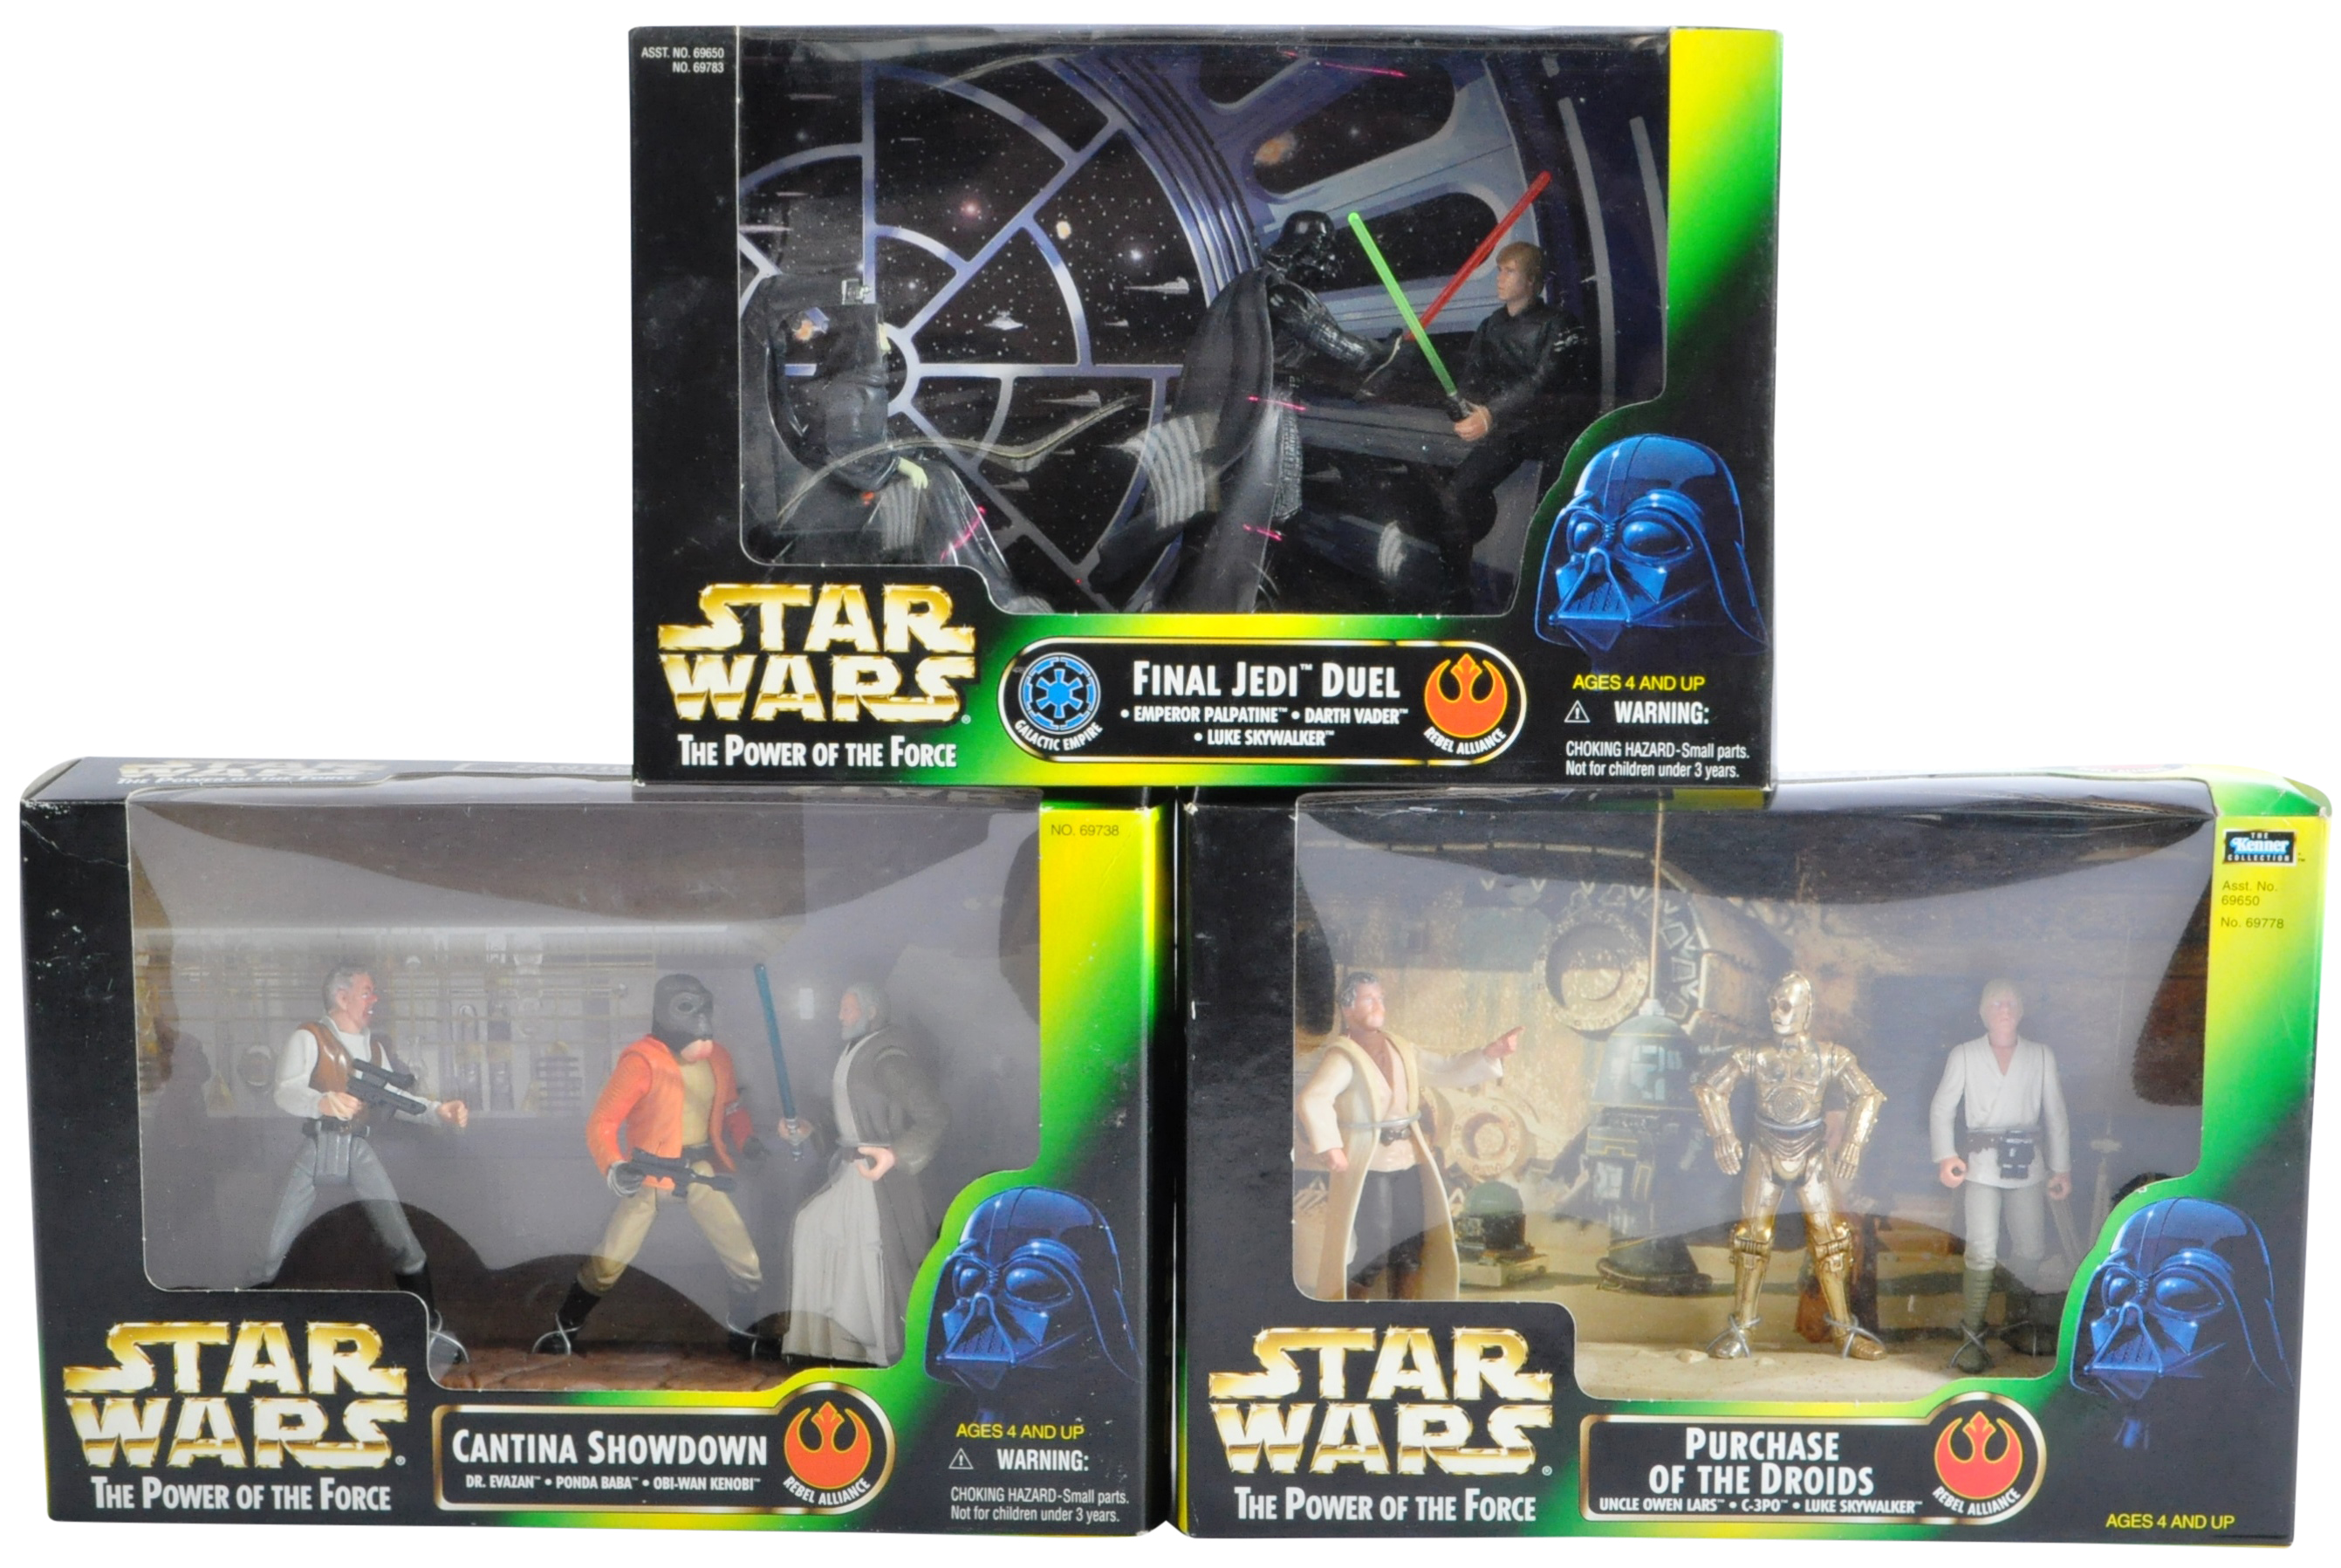 STAR WARS - COLLECTION OF KENNER POWER OF THE FORCE ACTION FIGURES